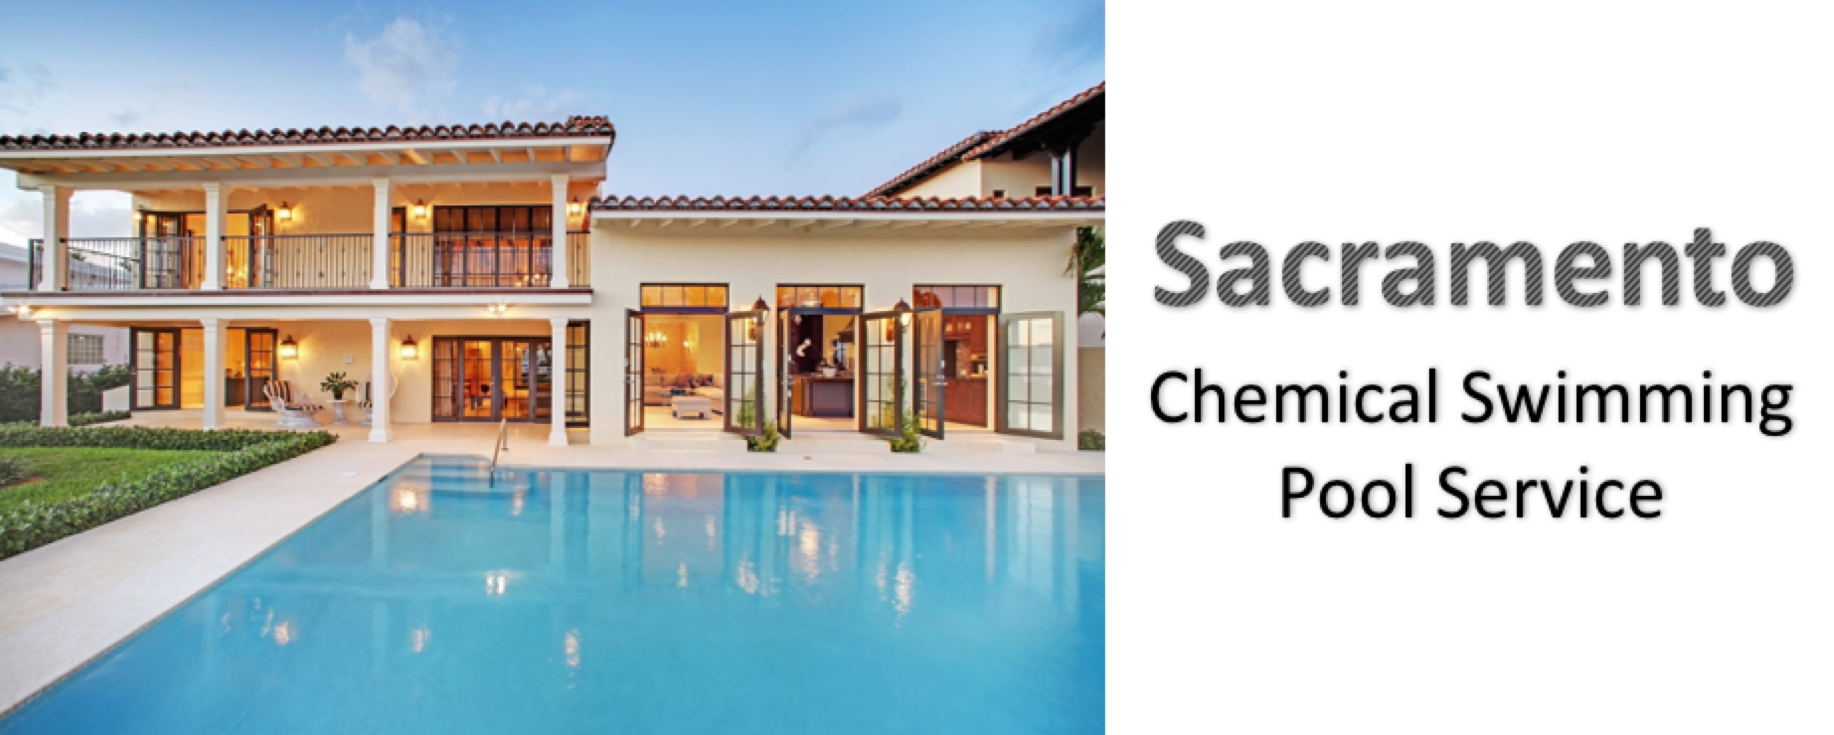 Sacramento Chemical Swimming Pool Service